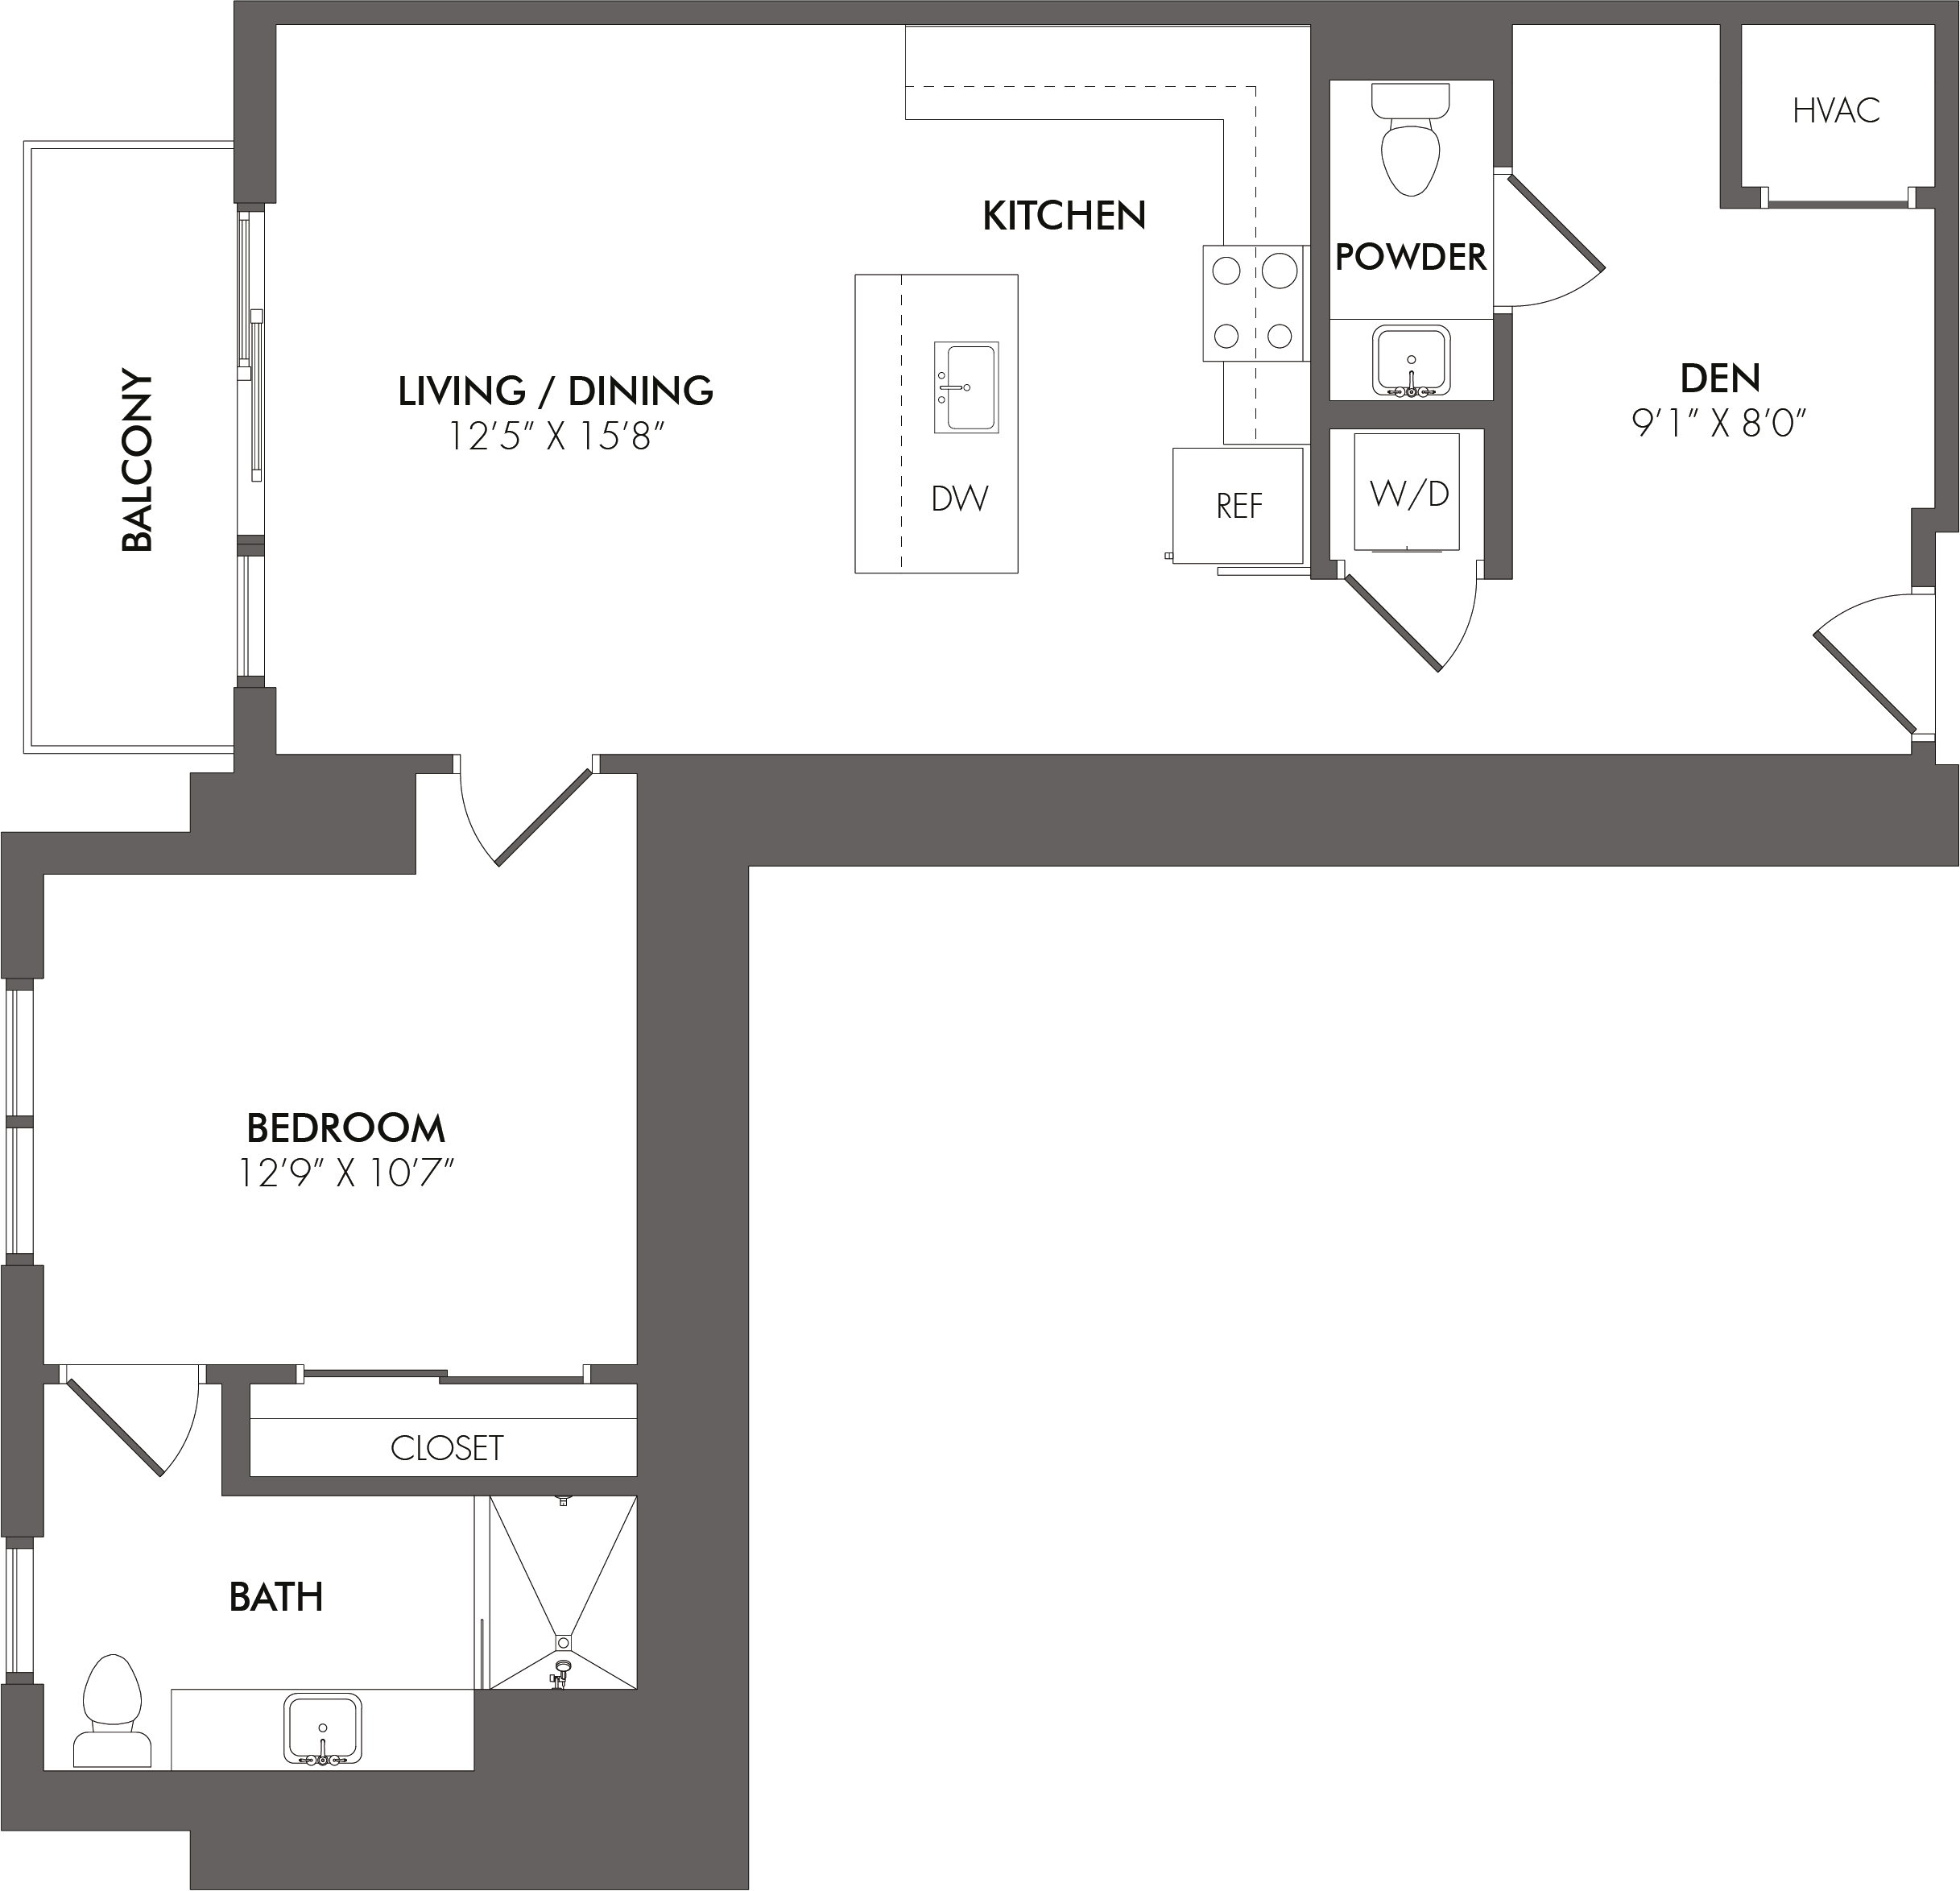 Apartment 1704 floorplan